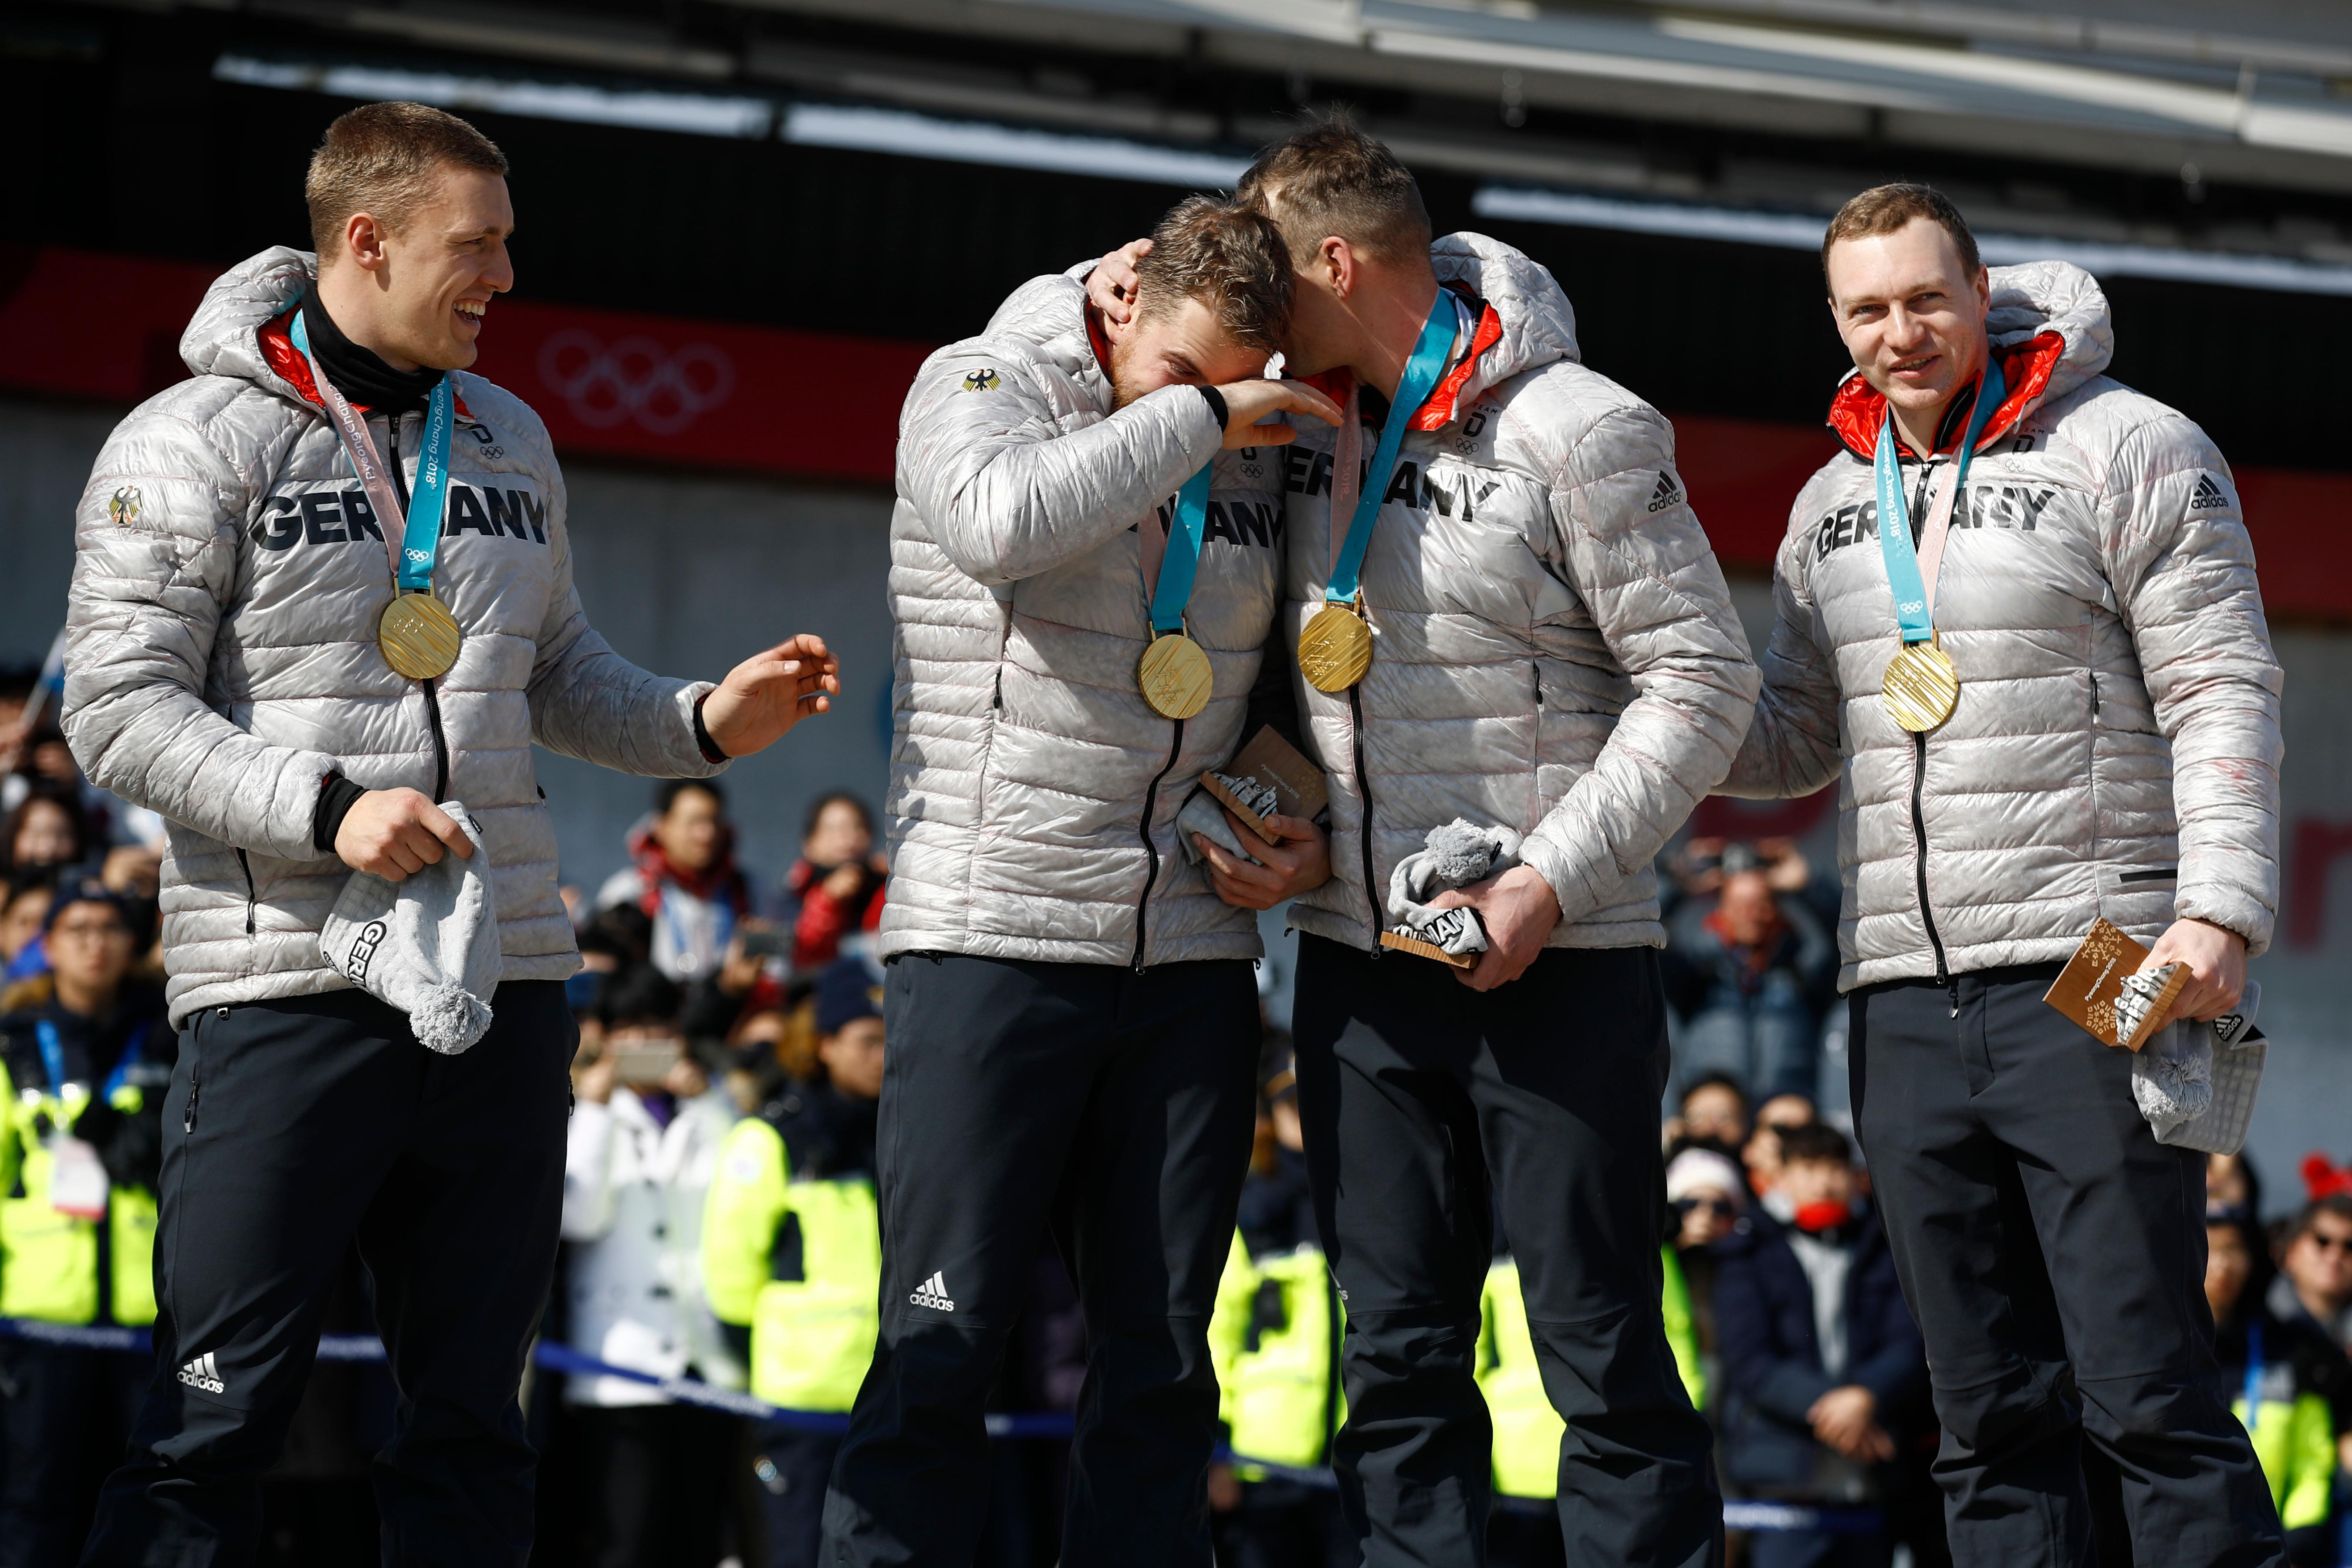 Gold Medalists driver Francesco Friedrich, Candy Bauer, Martin Grothkopp and Thorsten Margis of Germany celebrate during the medals ceremony after winning the four-man bobsled competition final at the 2018 Winter Olympics in Pyeongchang, South Korea, Sunday, Feb. 25, 2018. (AP Photo/Patrick Semansky)